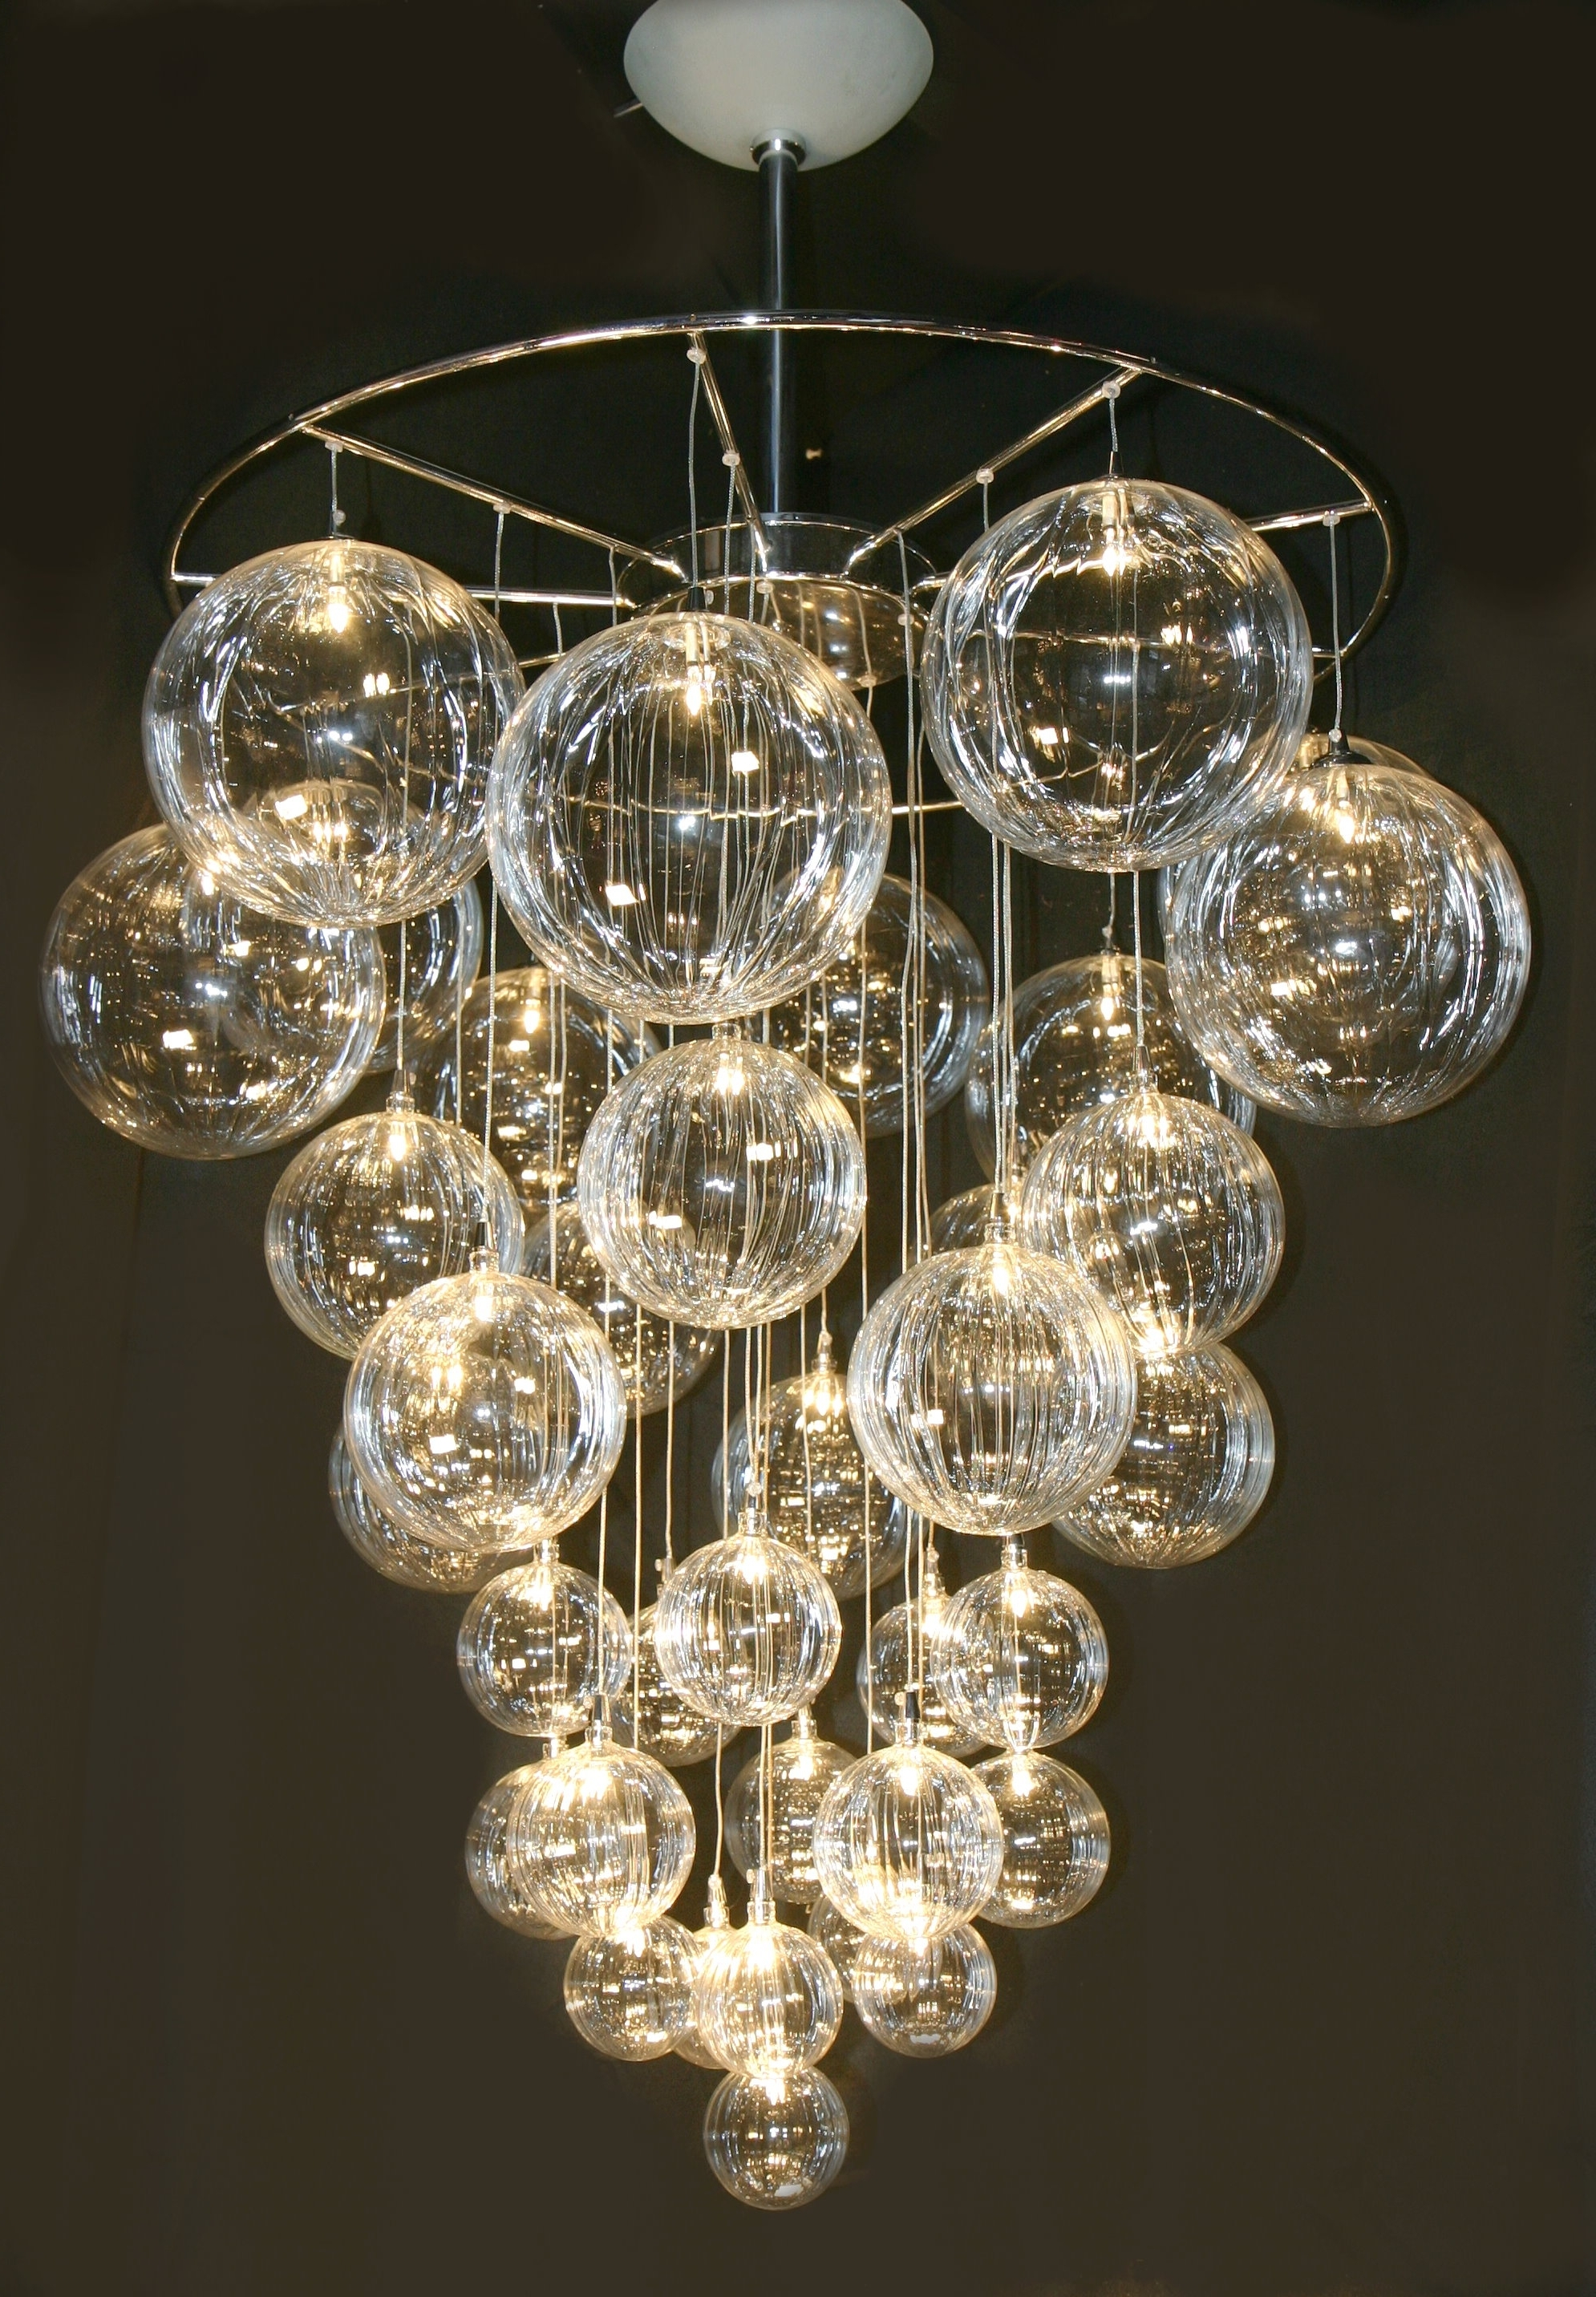 Newest Light : Contemporary Lighting Chandeliers Ideas And Antique All For Unusual Chandeliers (View 5 of 15)